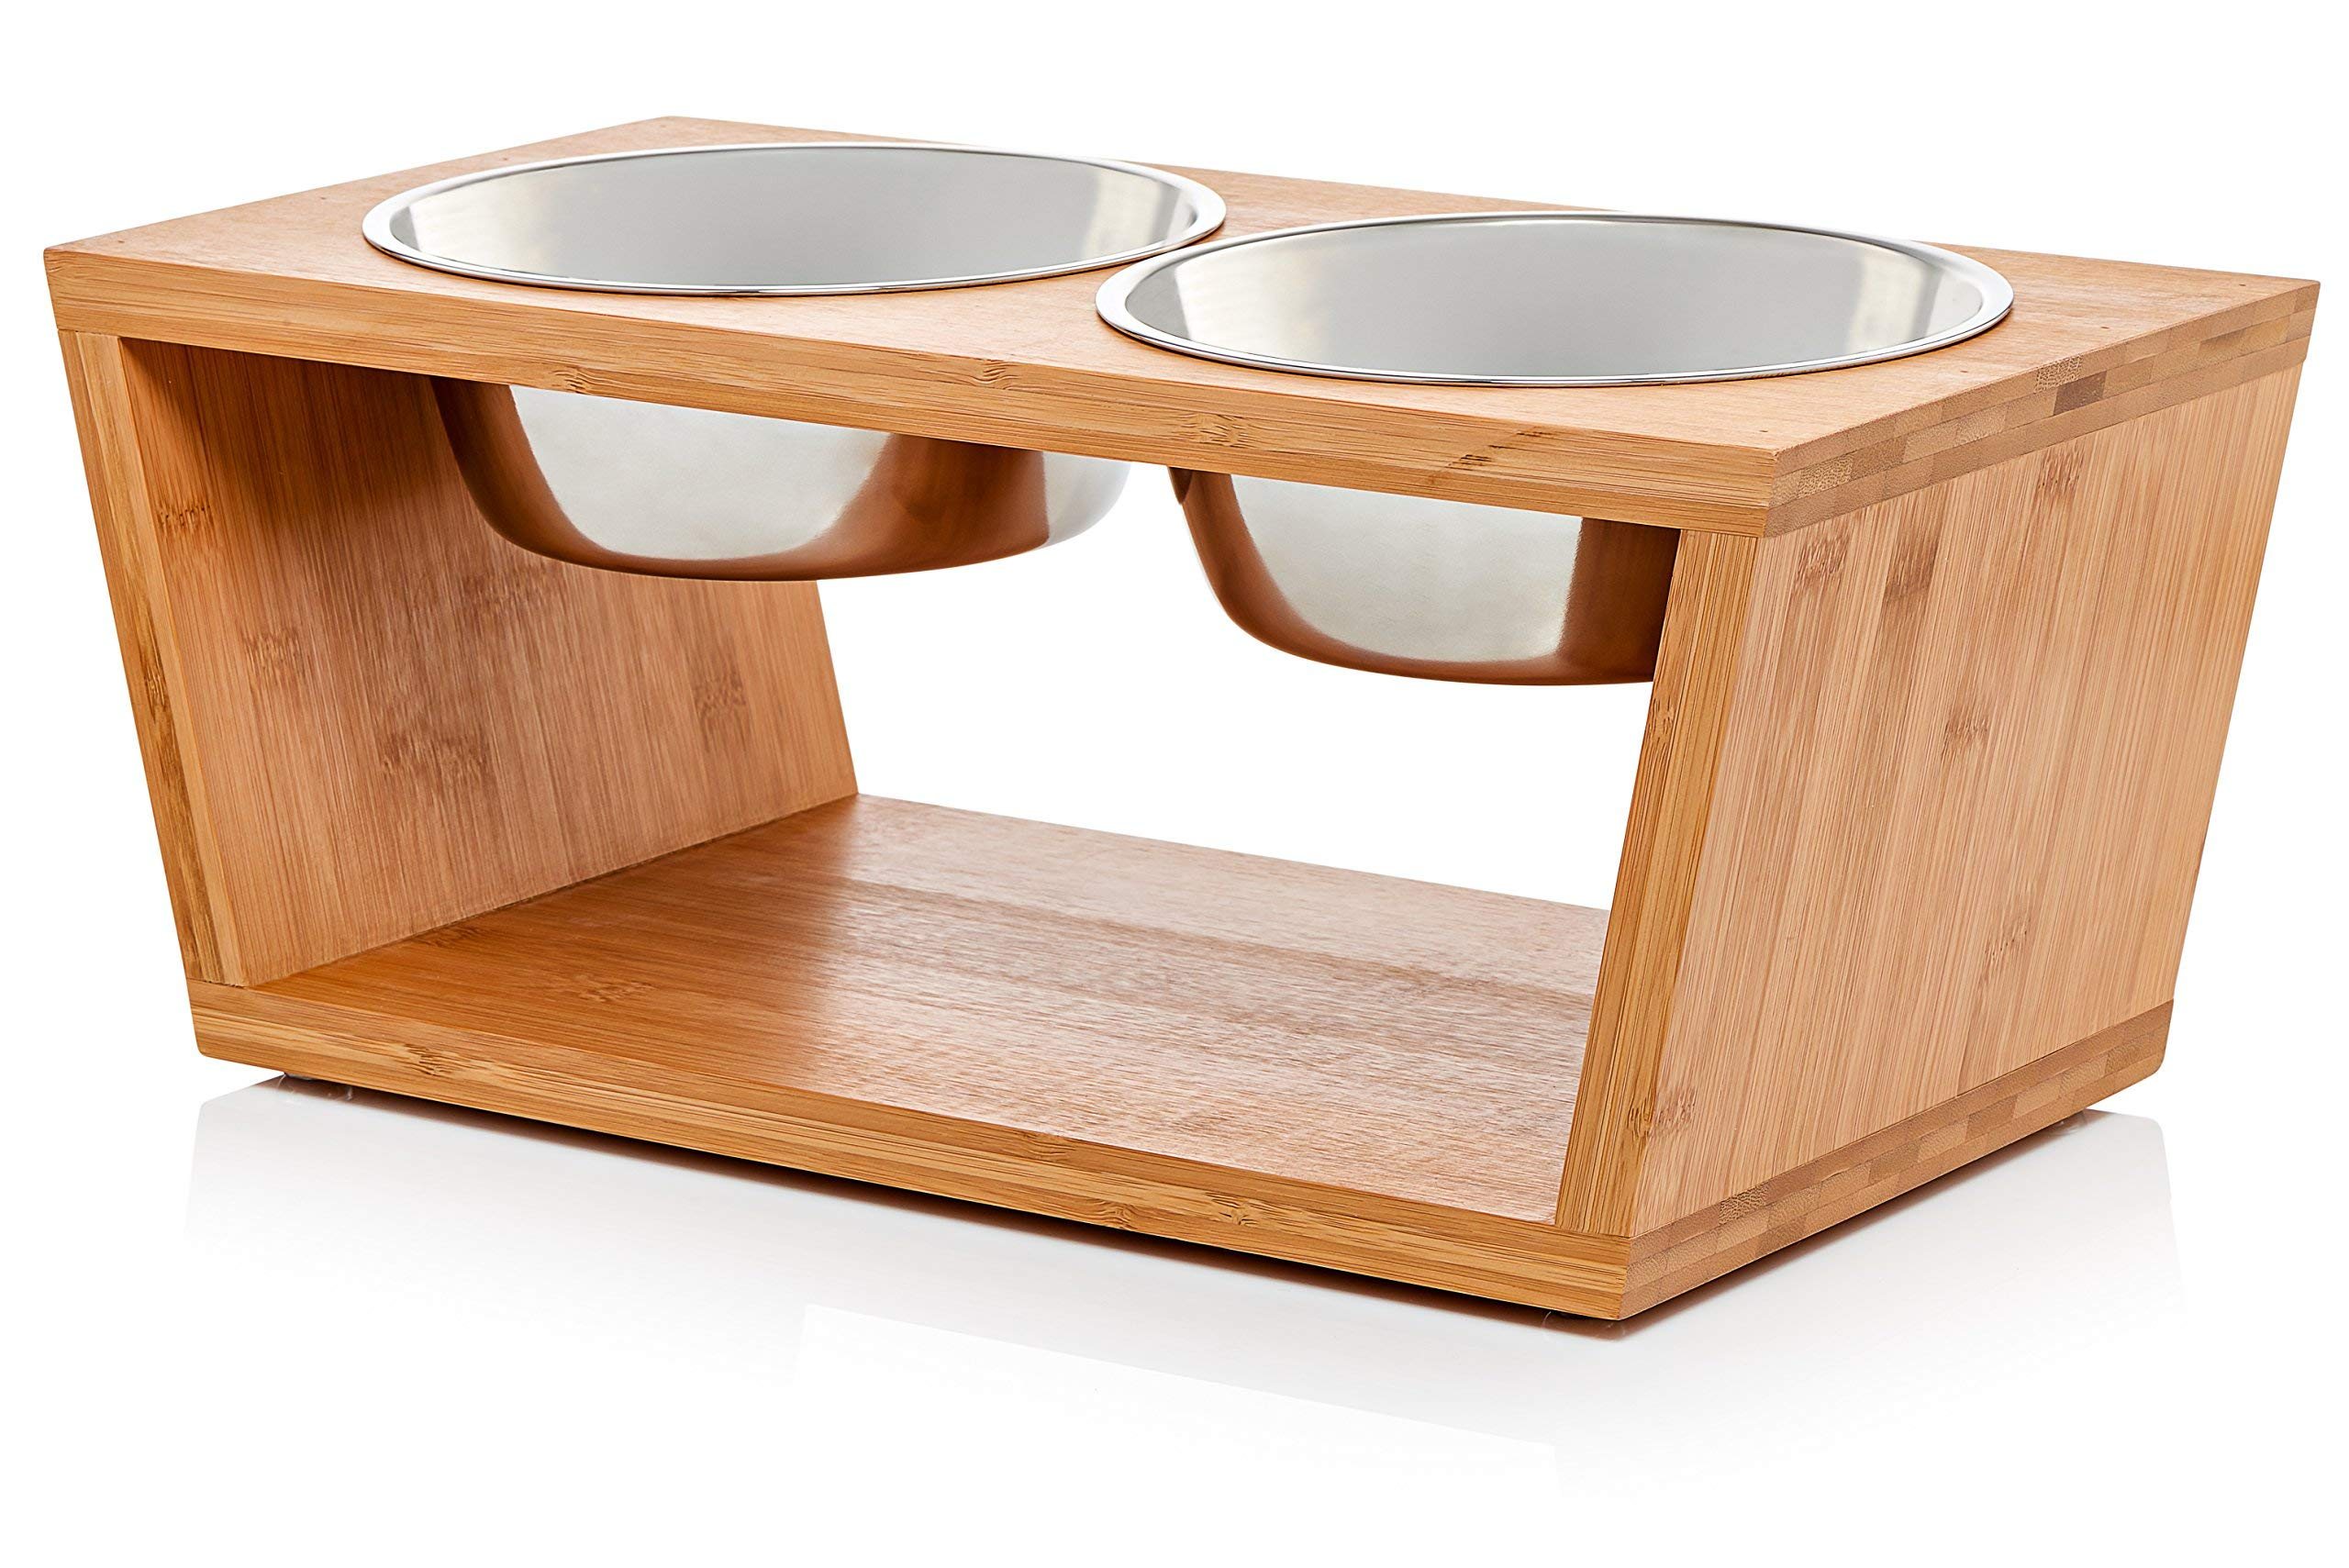 Premium 7'' Elevated Dog and Cat Pet Feeder, Double Bowl Raised Stand Comes with Extra Two Stainless Steel Bowls. Perfect for Dogs and Cats. by Pawfect Pets